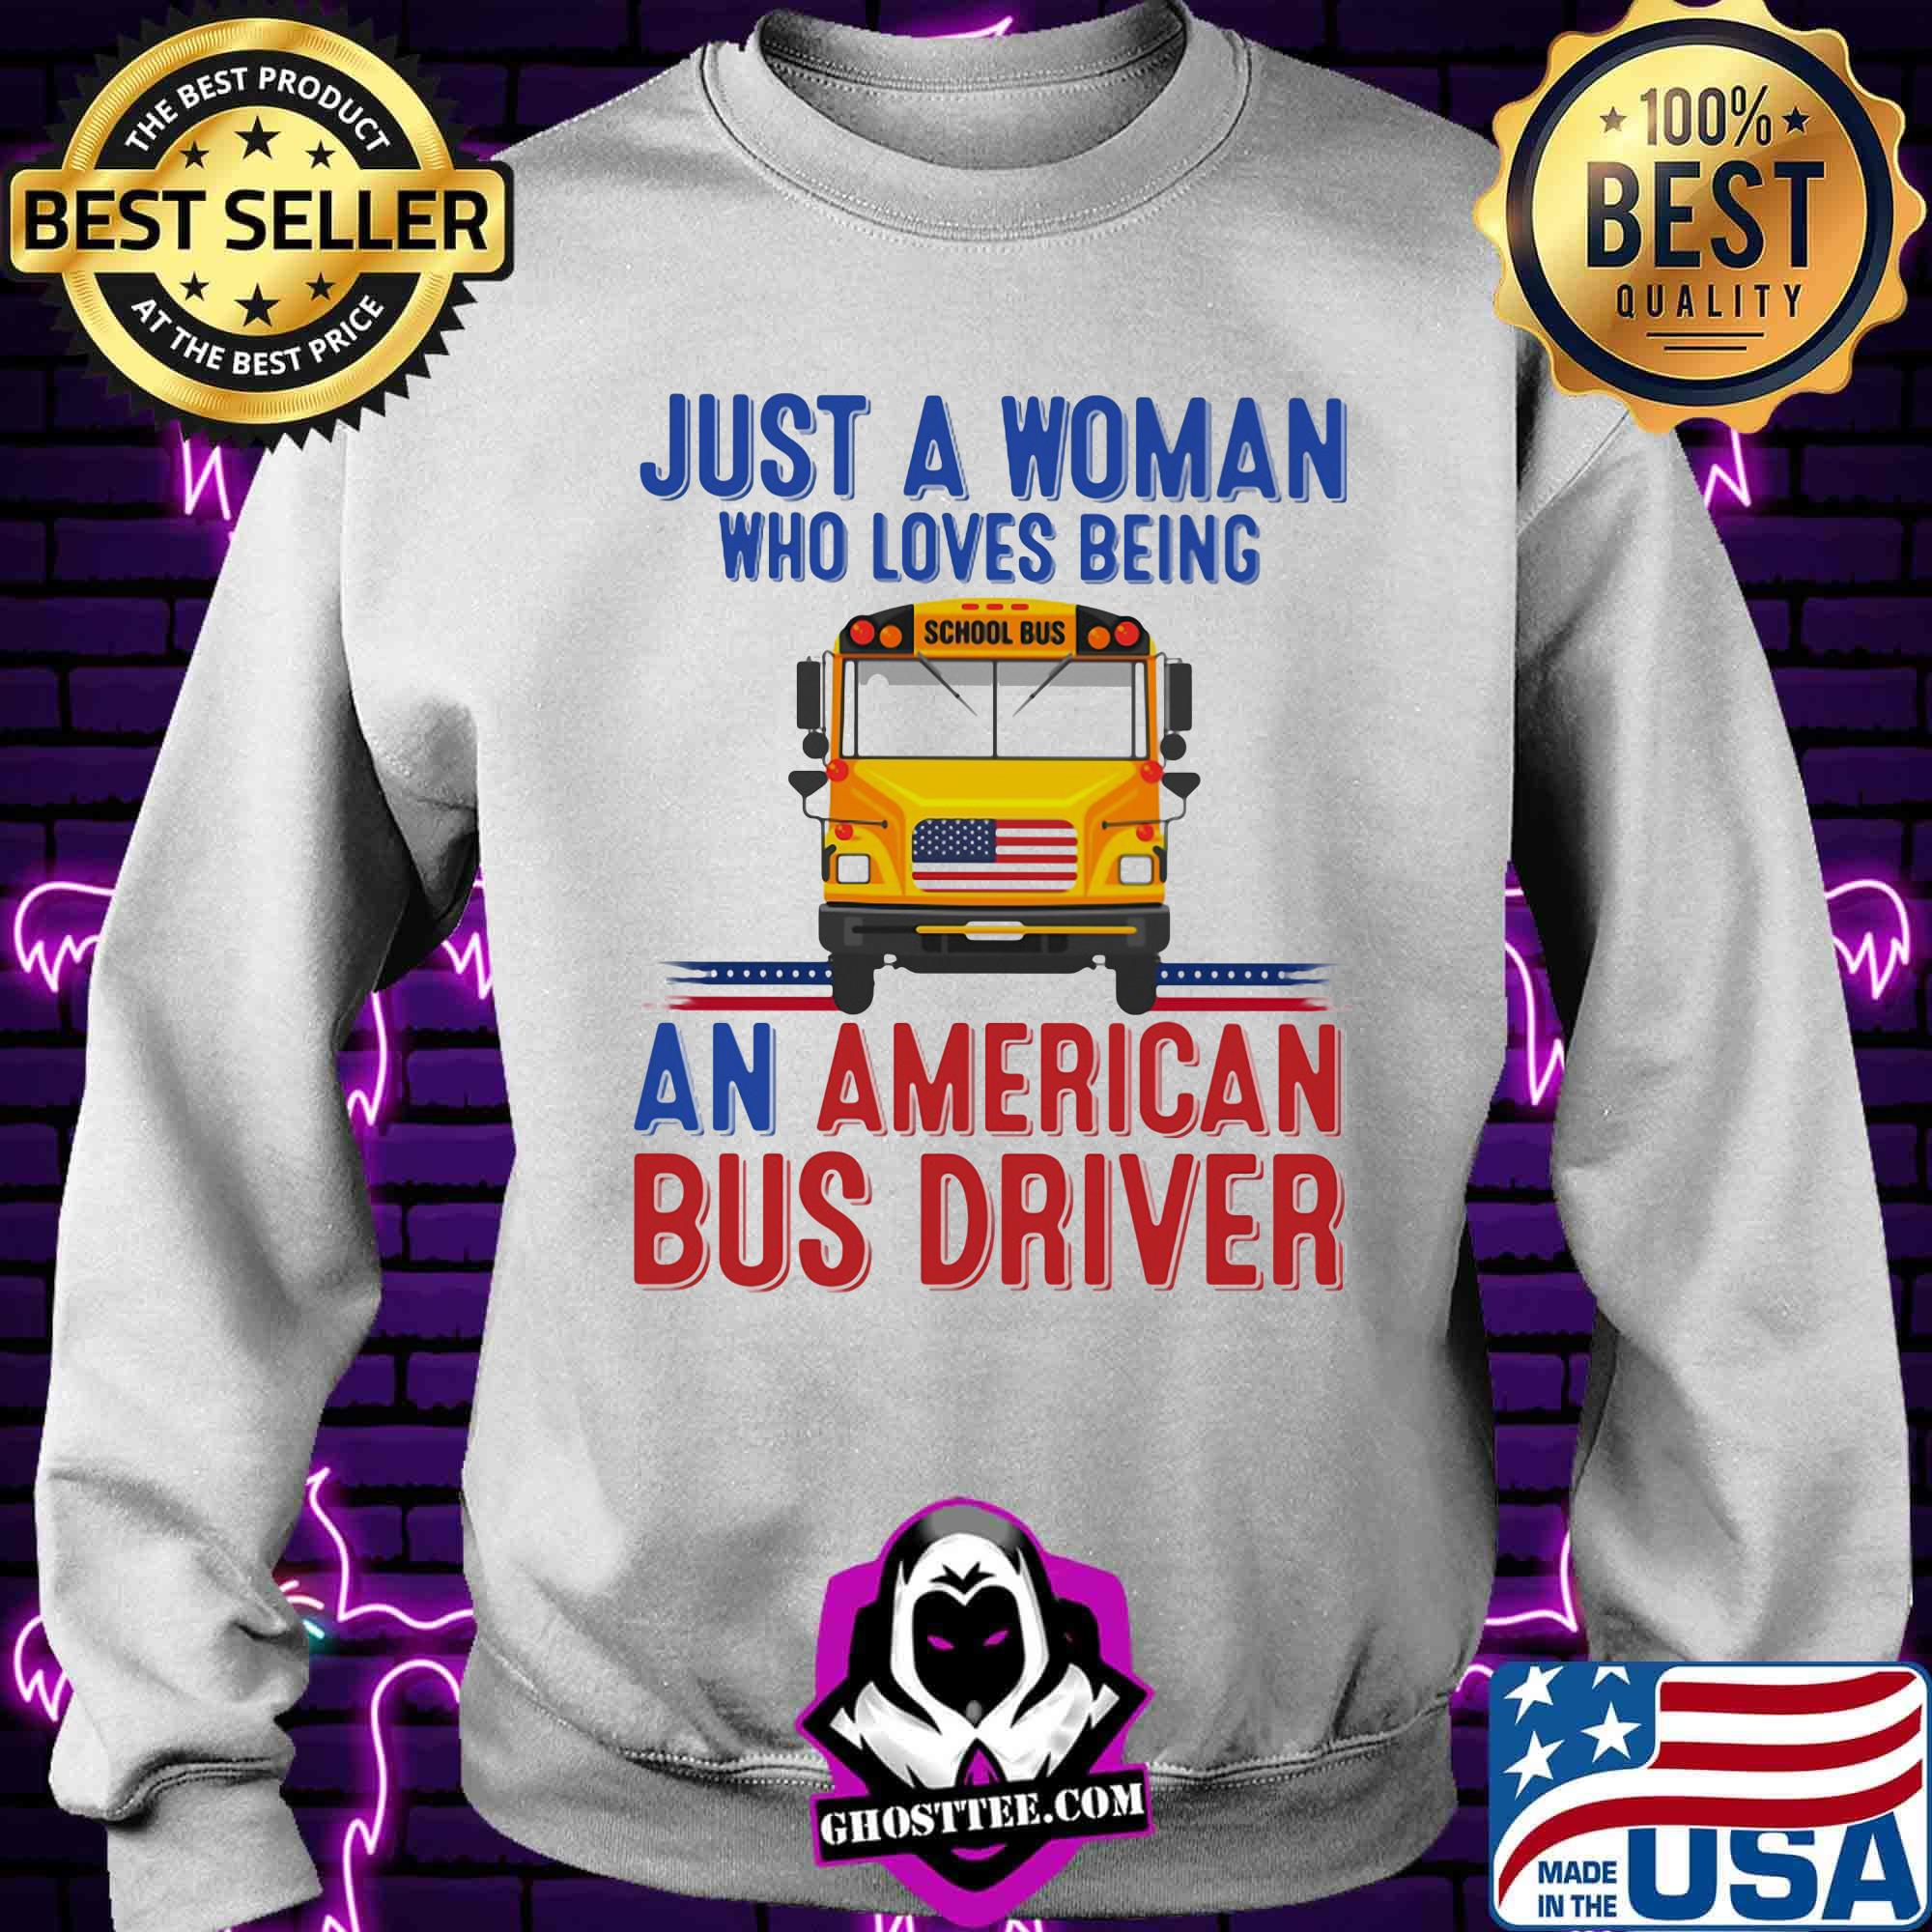 eb634eeb just a woman who loves being an american bus driver shirt sweater - Home